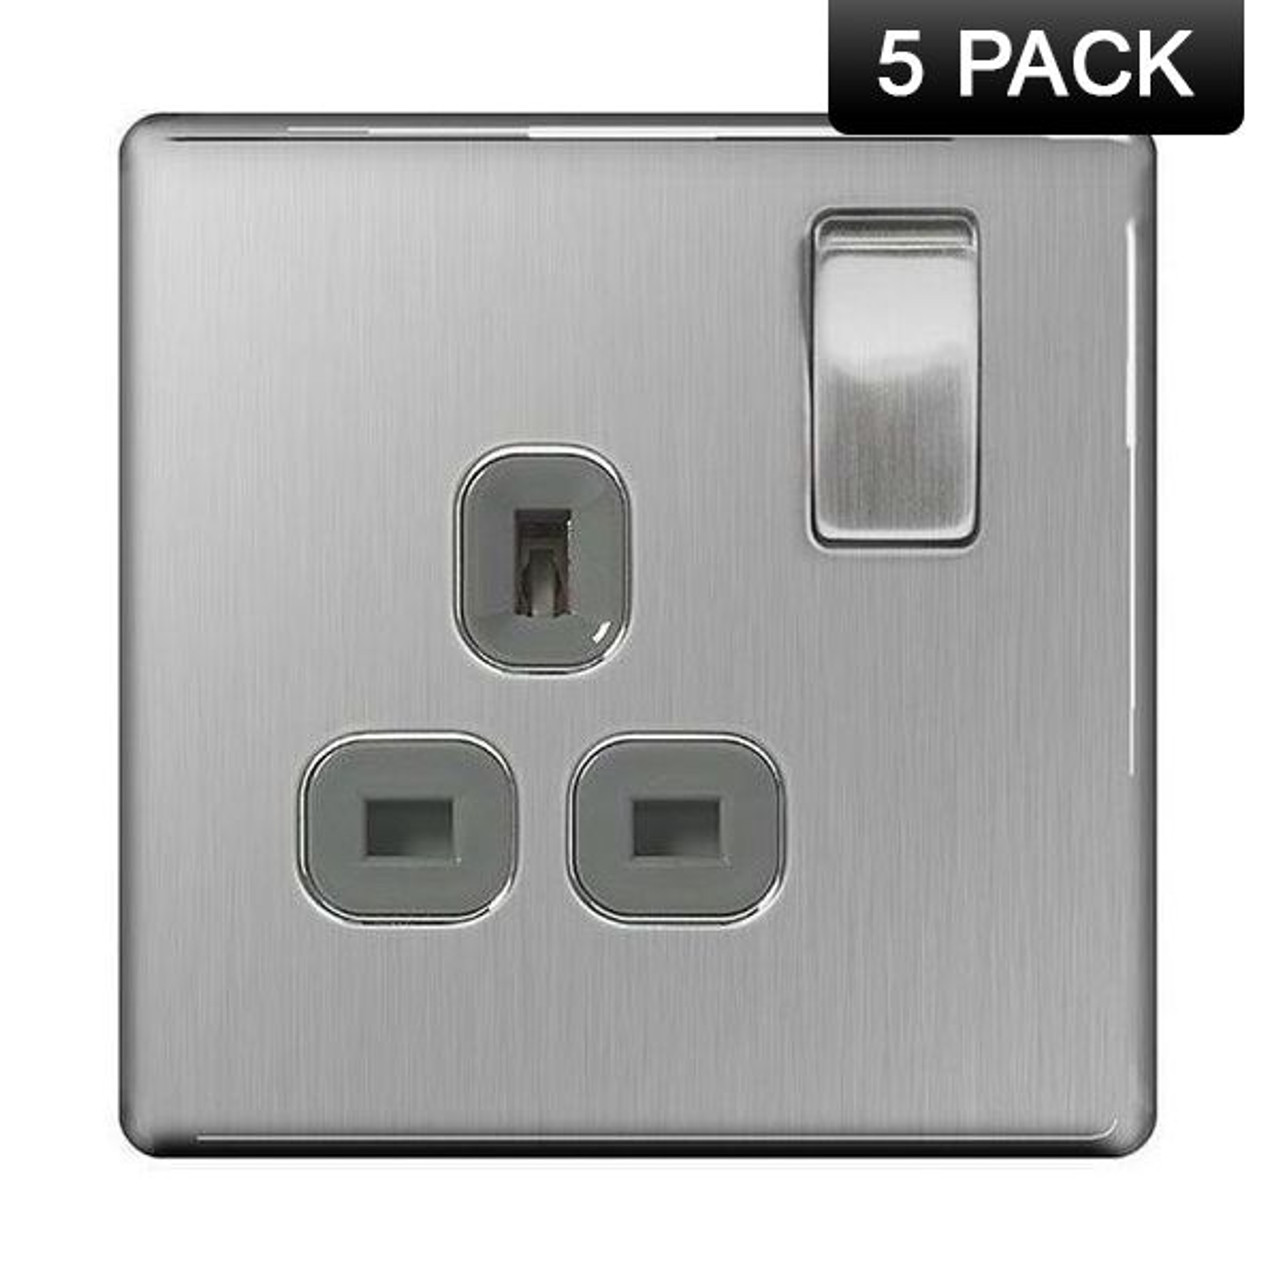 BG Nexus Screwless Brushed Steel 13A Switched Fused Spur With Neon /& Cable FBS53